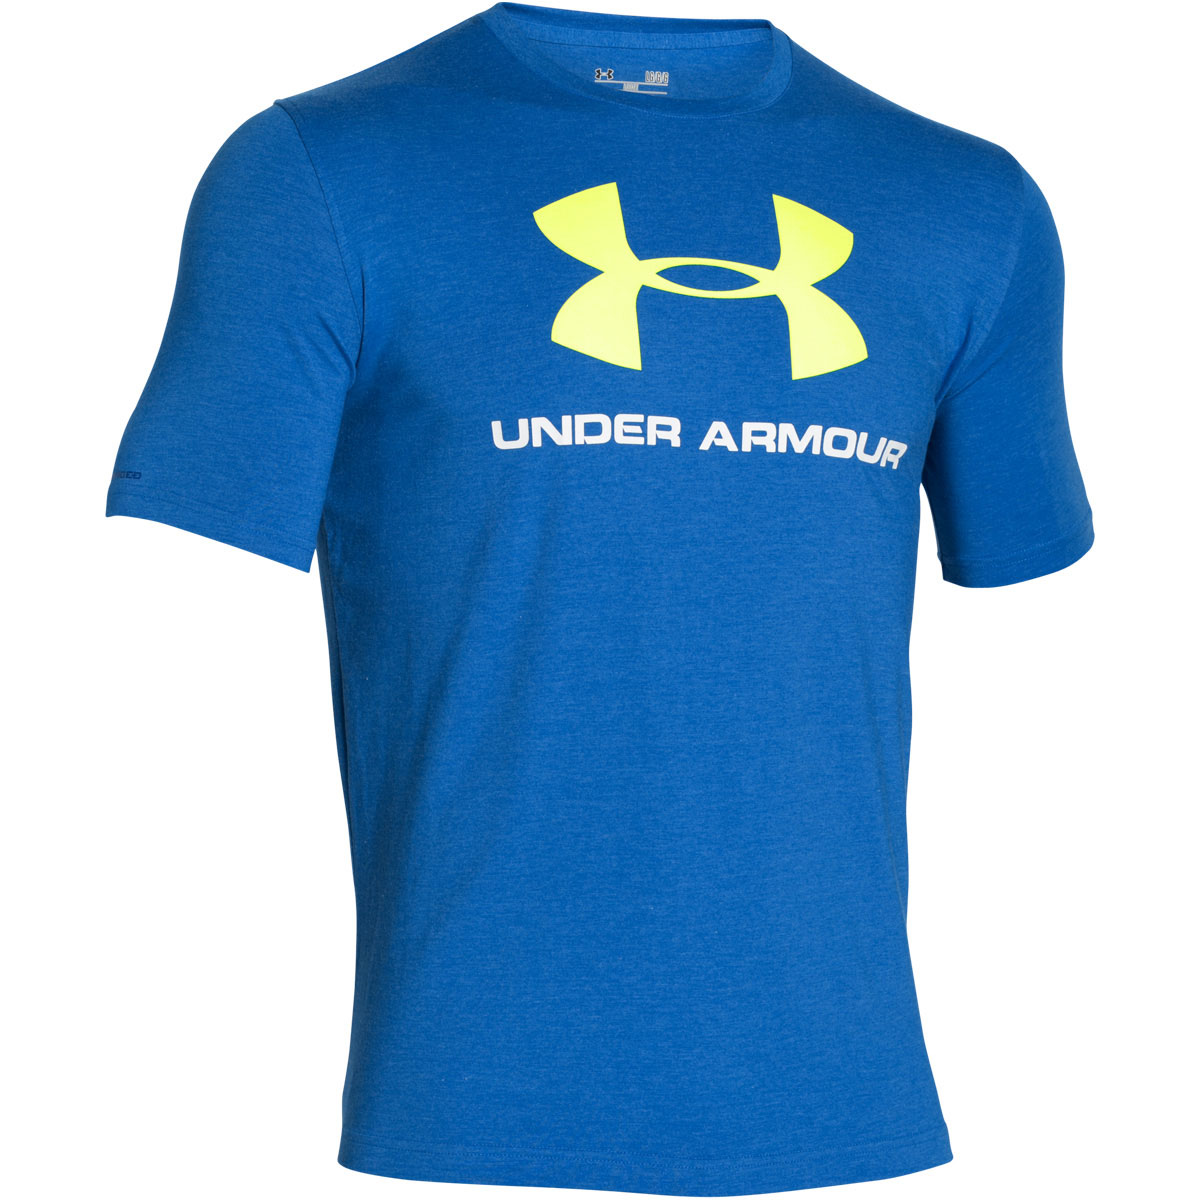 Under armour 2016 mens charged sportstyle logo t shirt for Under armour t shirts